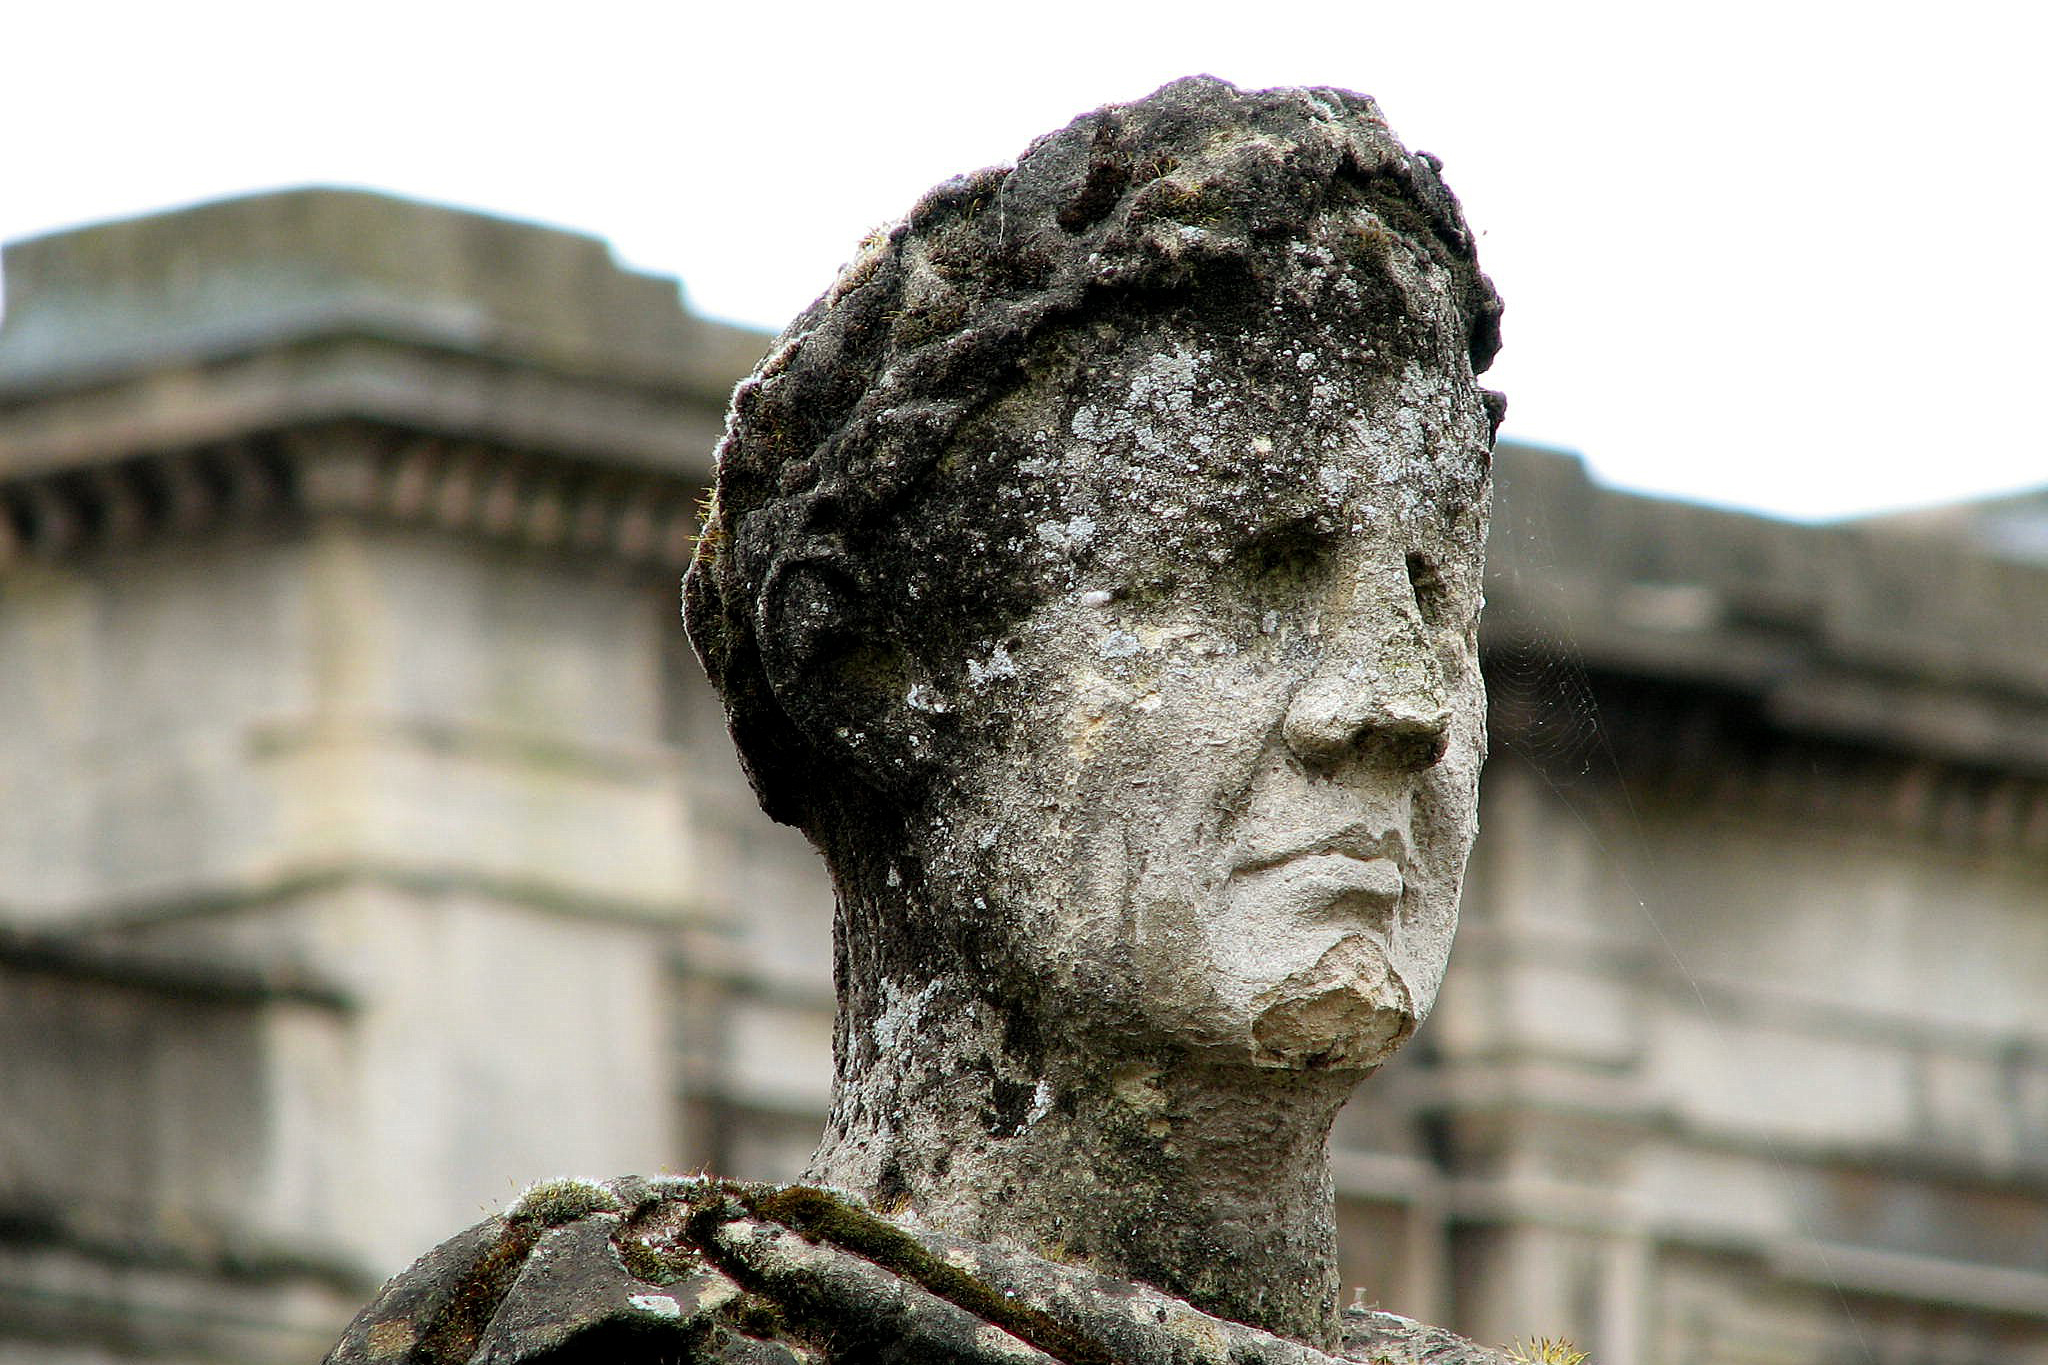 weathered statue at site of Roman bathhouse